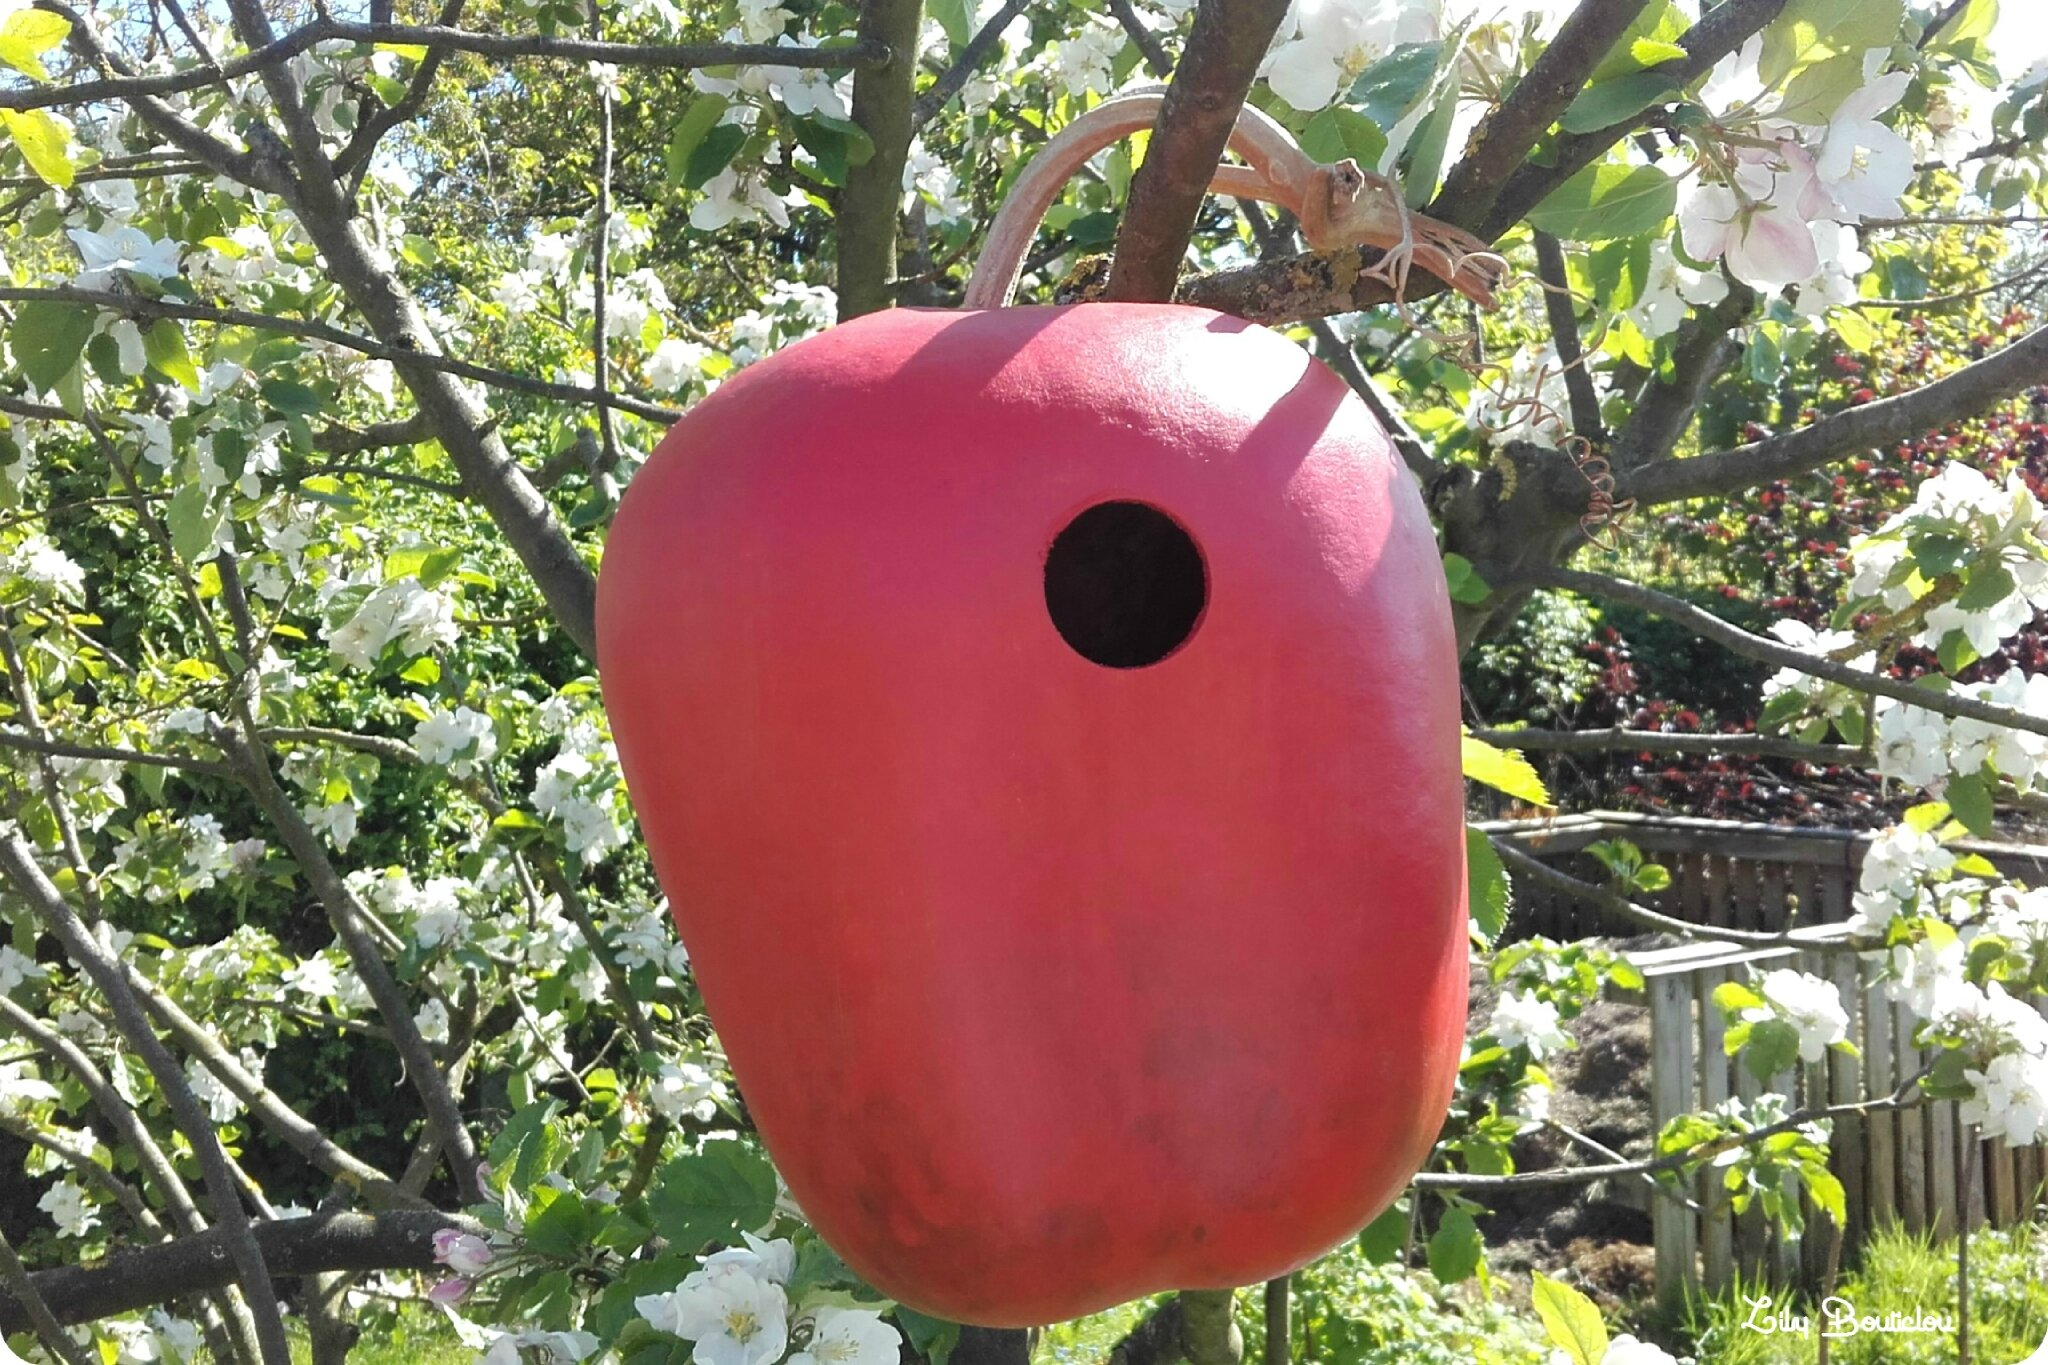 nichoir calebasse pomme birdhouse calabasch apple lilybouticlou